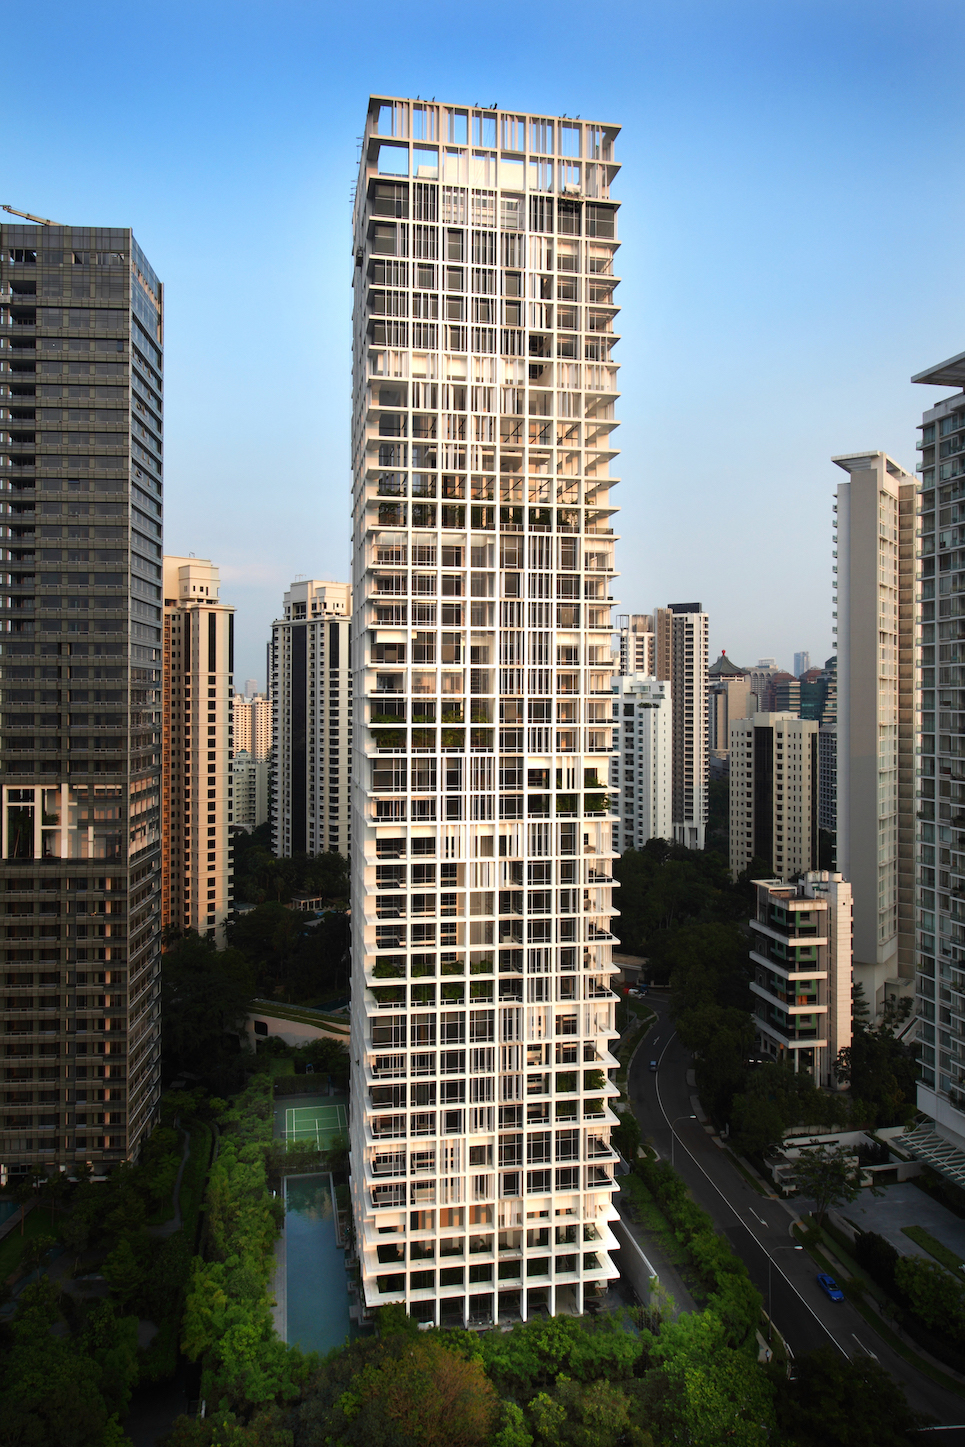 LE NOUVEL ARDMORE - A 3,929 sq ft, four-bedroom unit on the 12th floor of Le Nouvel Ardmore recently fetched $15.7 million or $4,000 psf (Photo: Samuel Isaac Chua/EdgeProp Singapore)